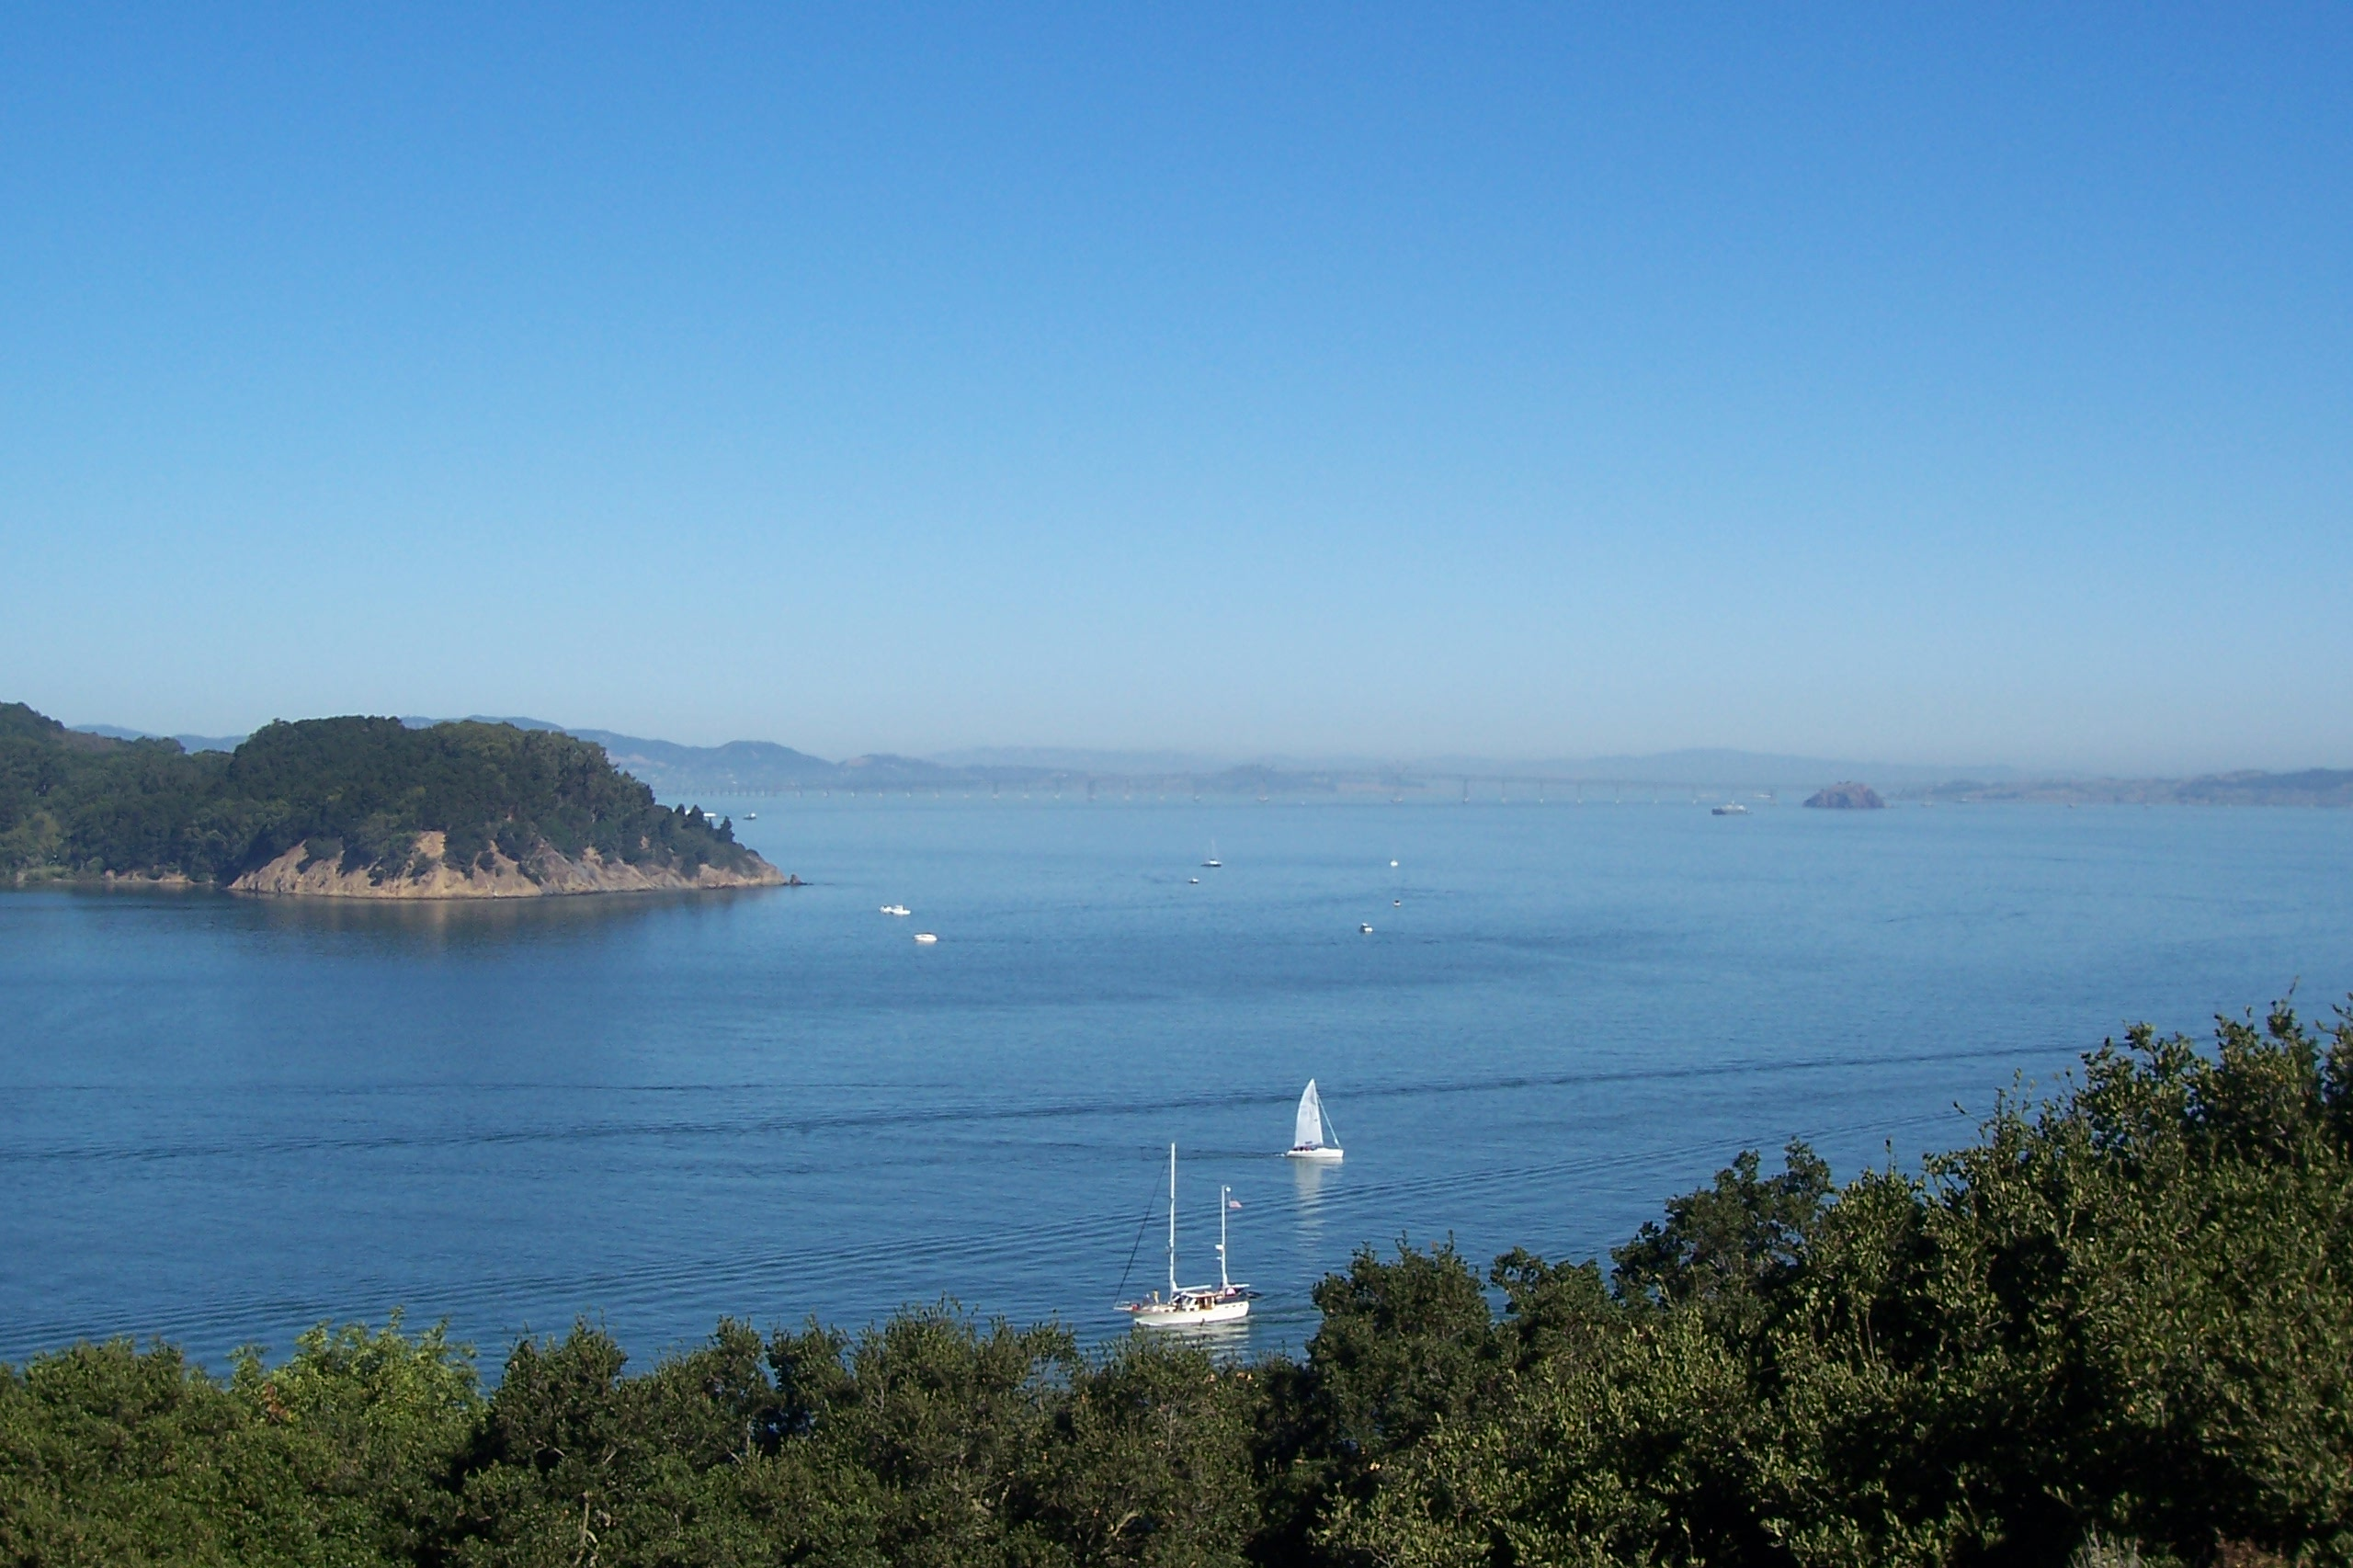 Opinions on San Pablo Bay